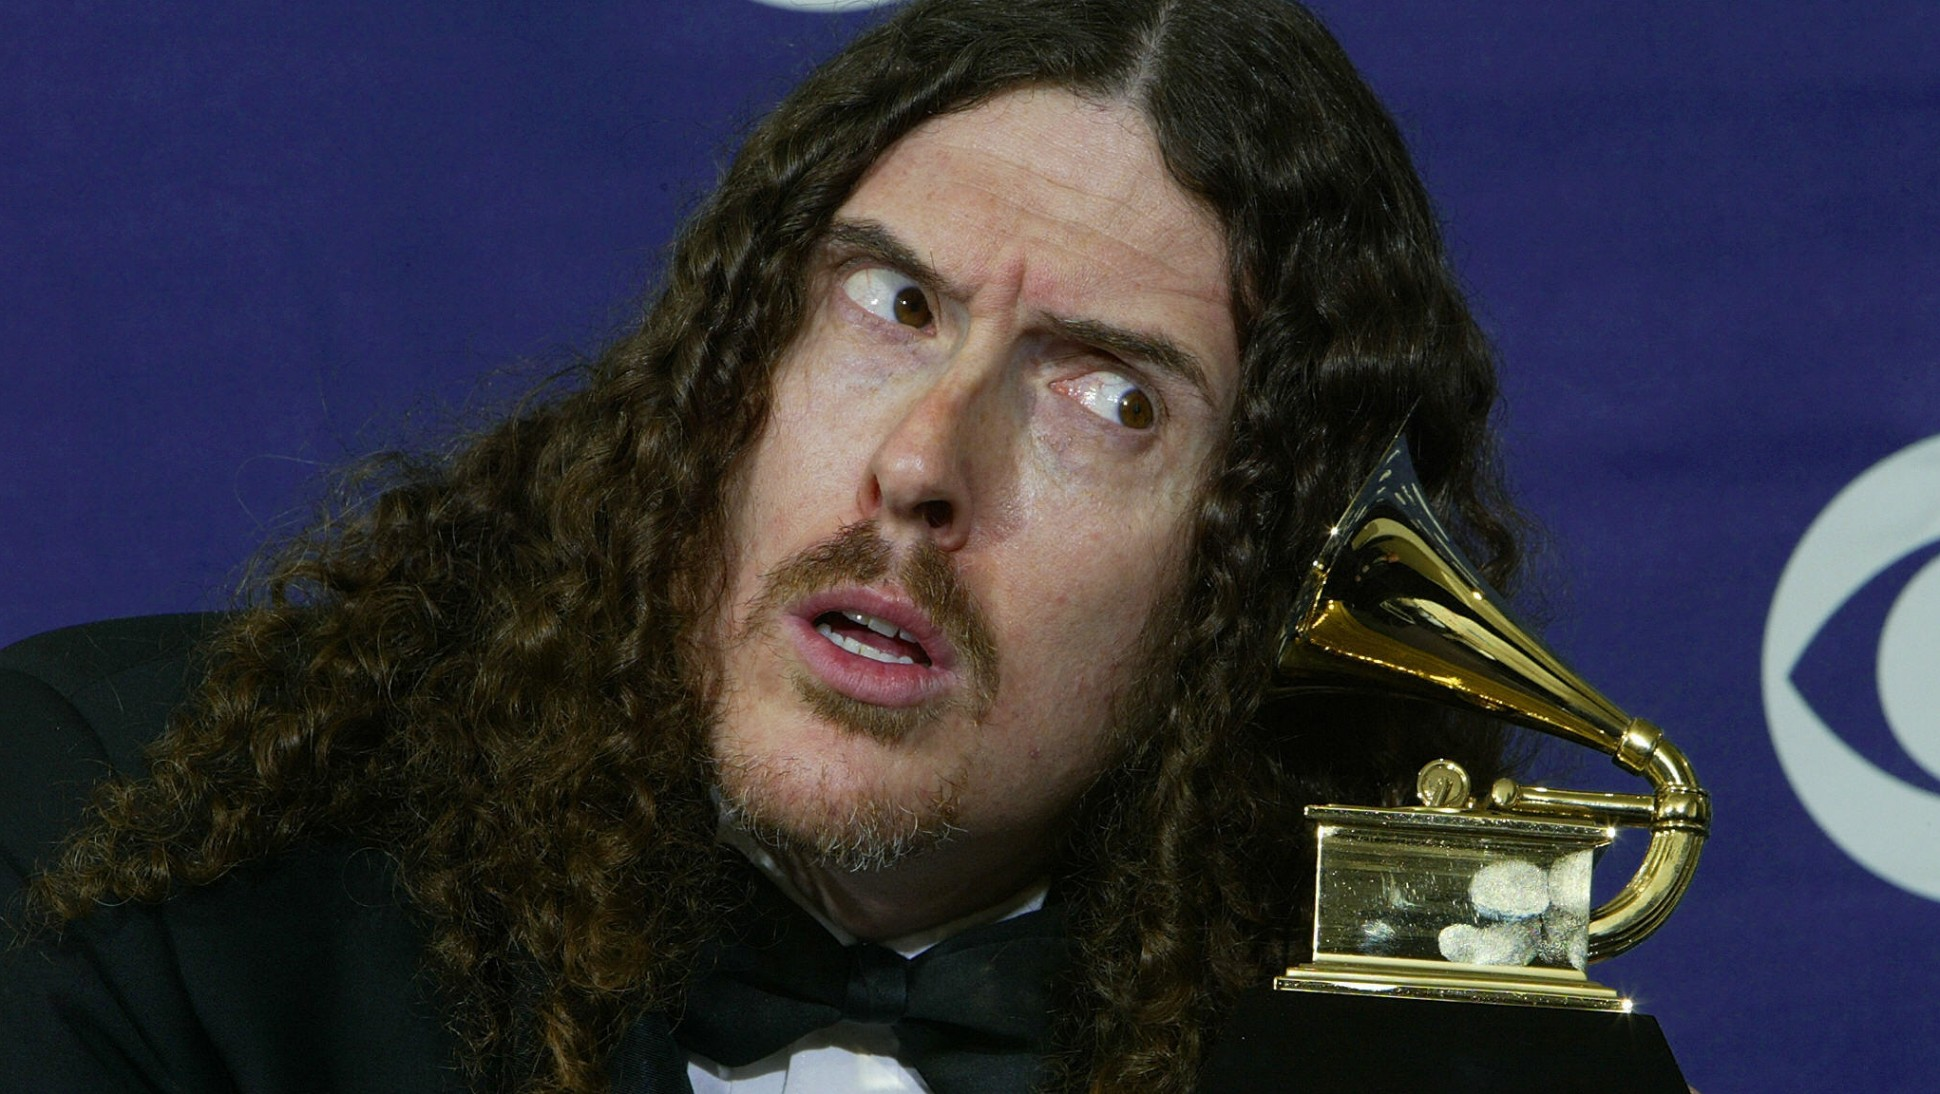 Weird Al Yankovic Backgrounds on Wallpapers Vista